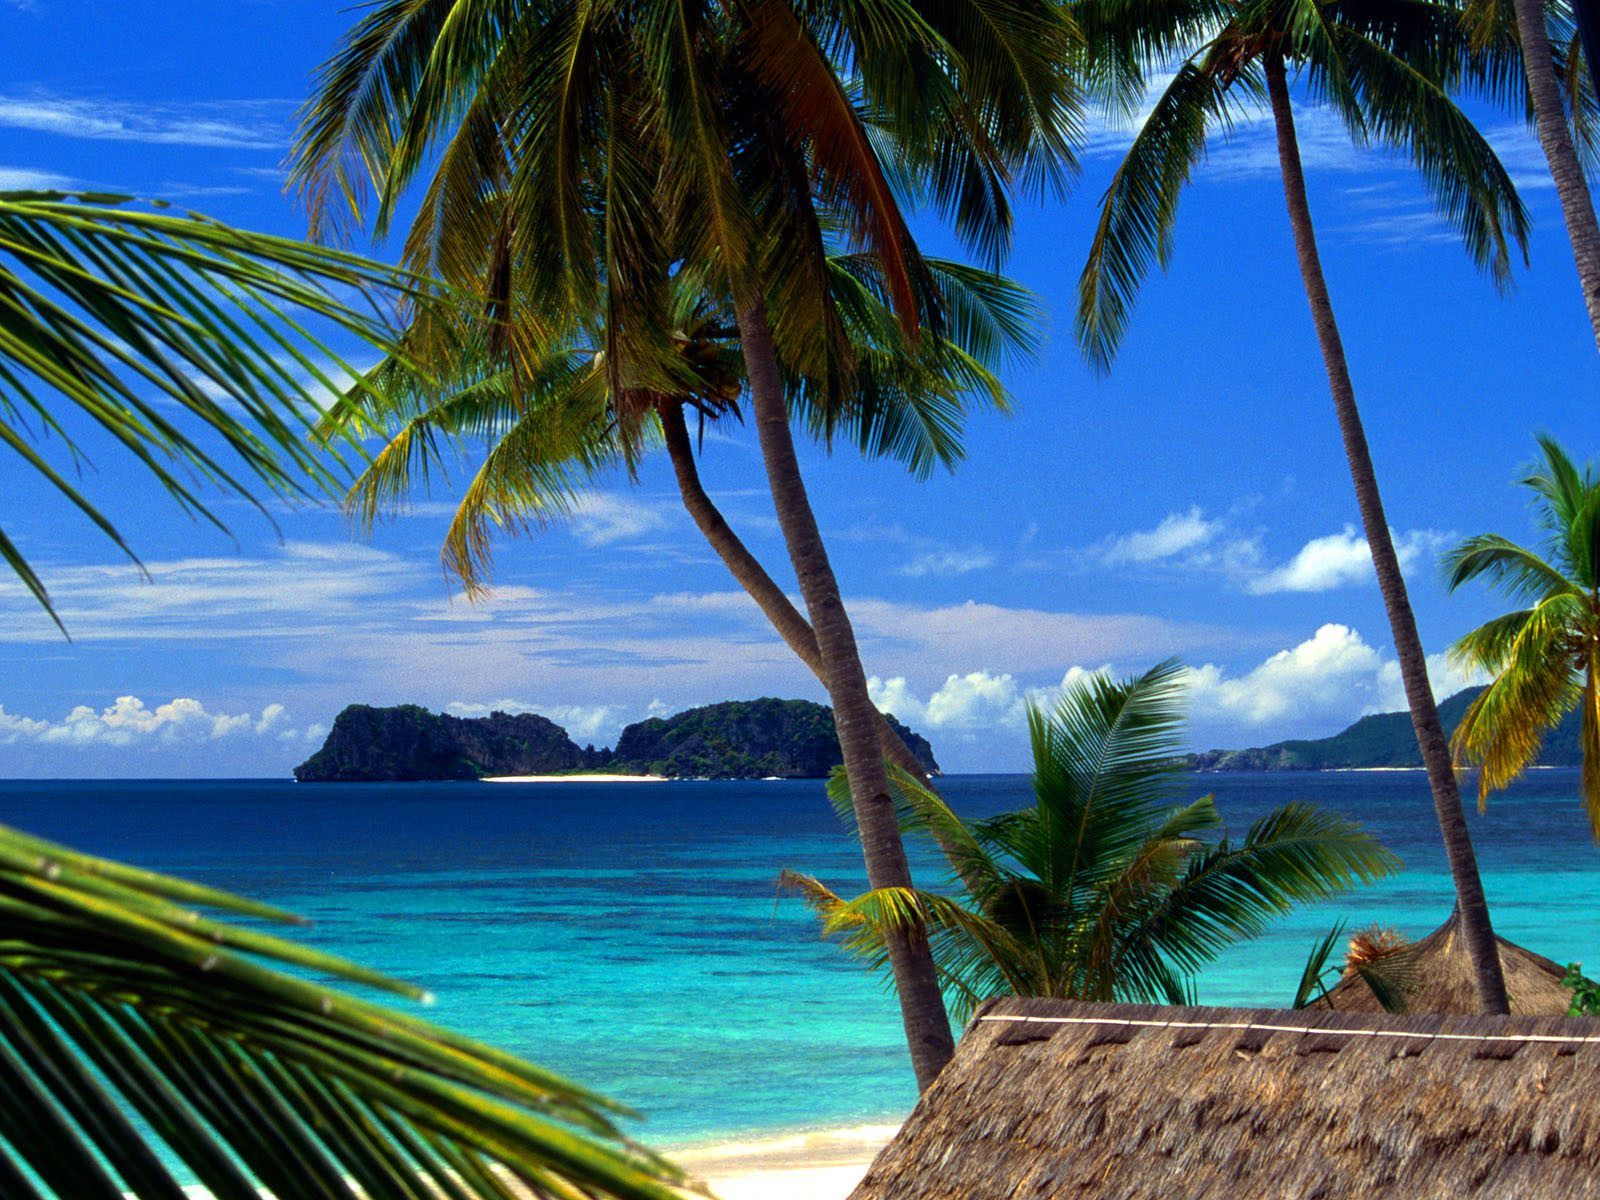 El Nido, Palawan Philippines - Nice Pictures